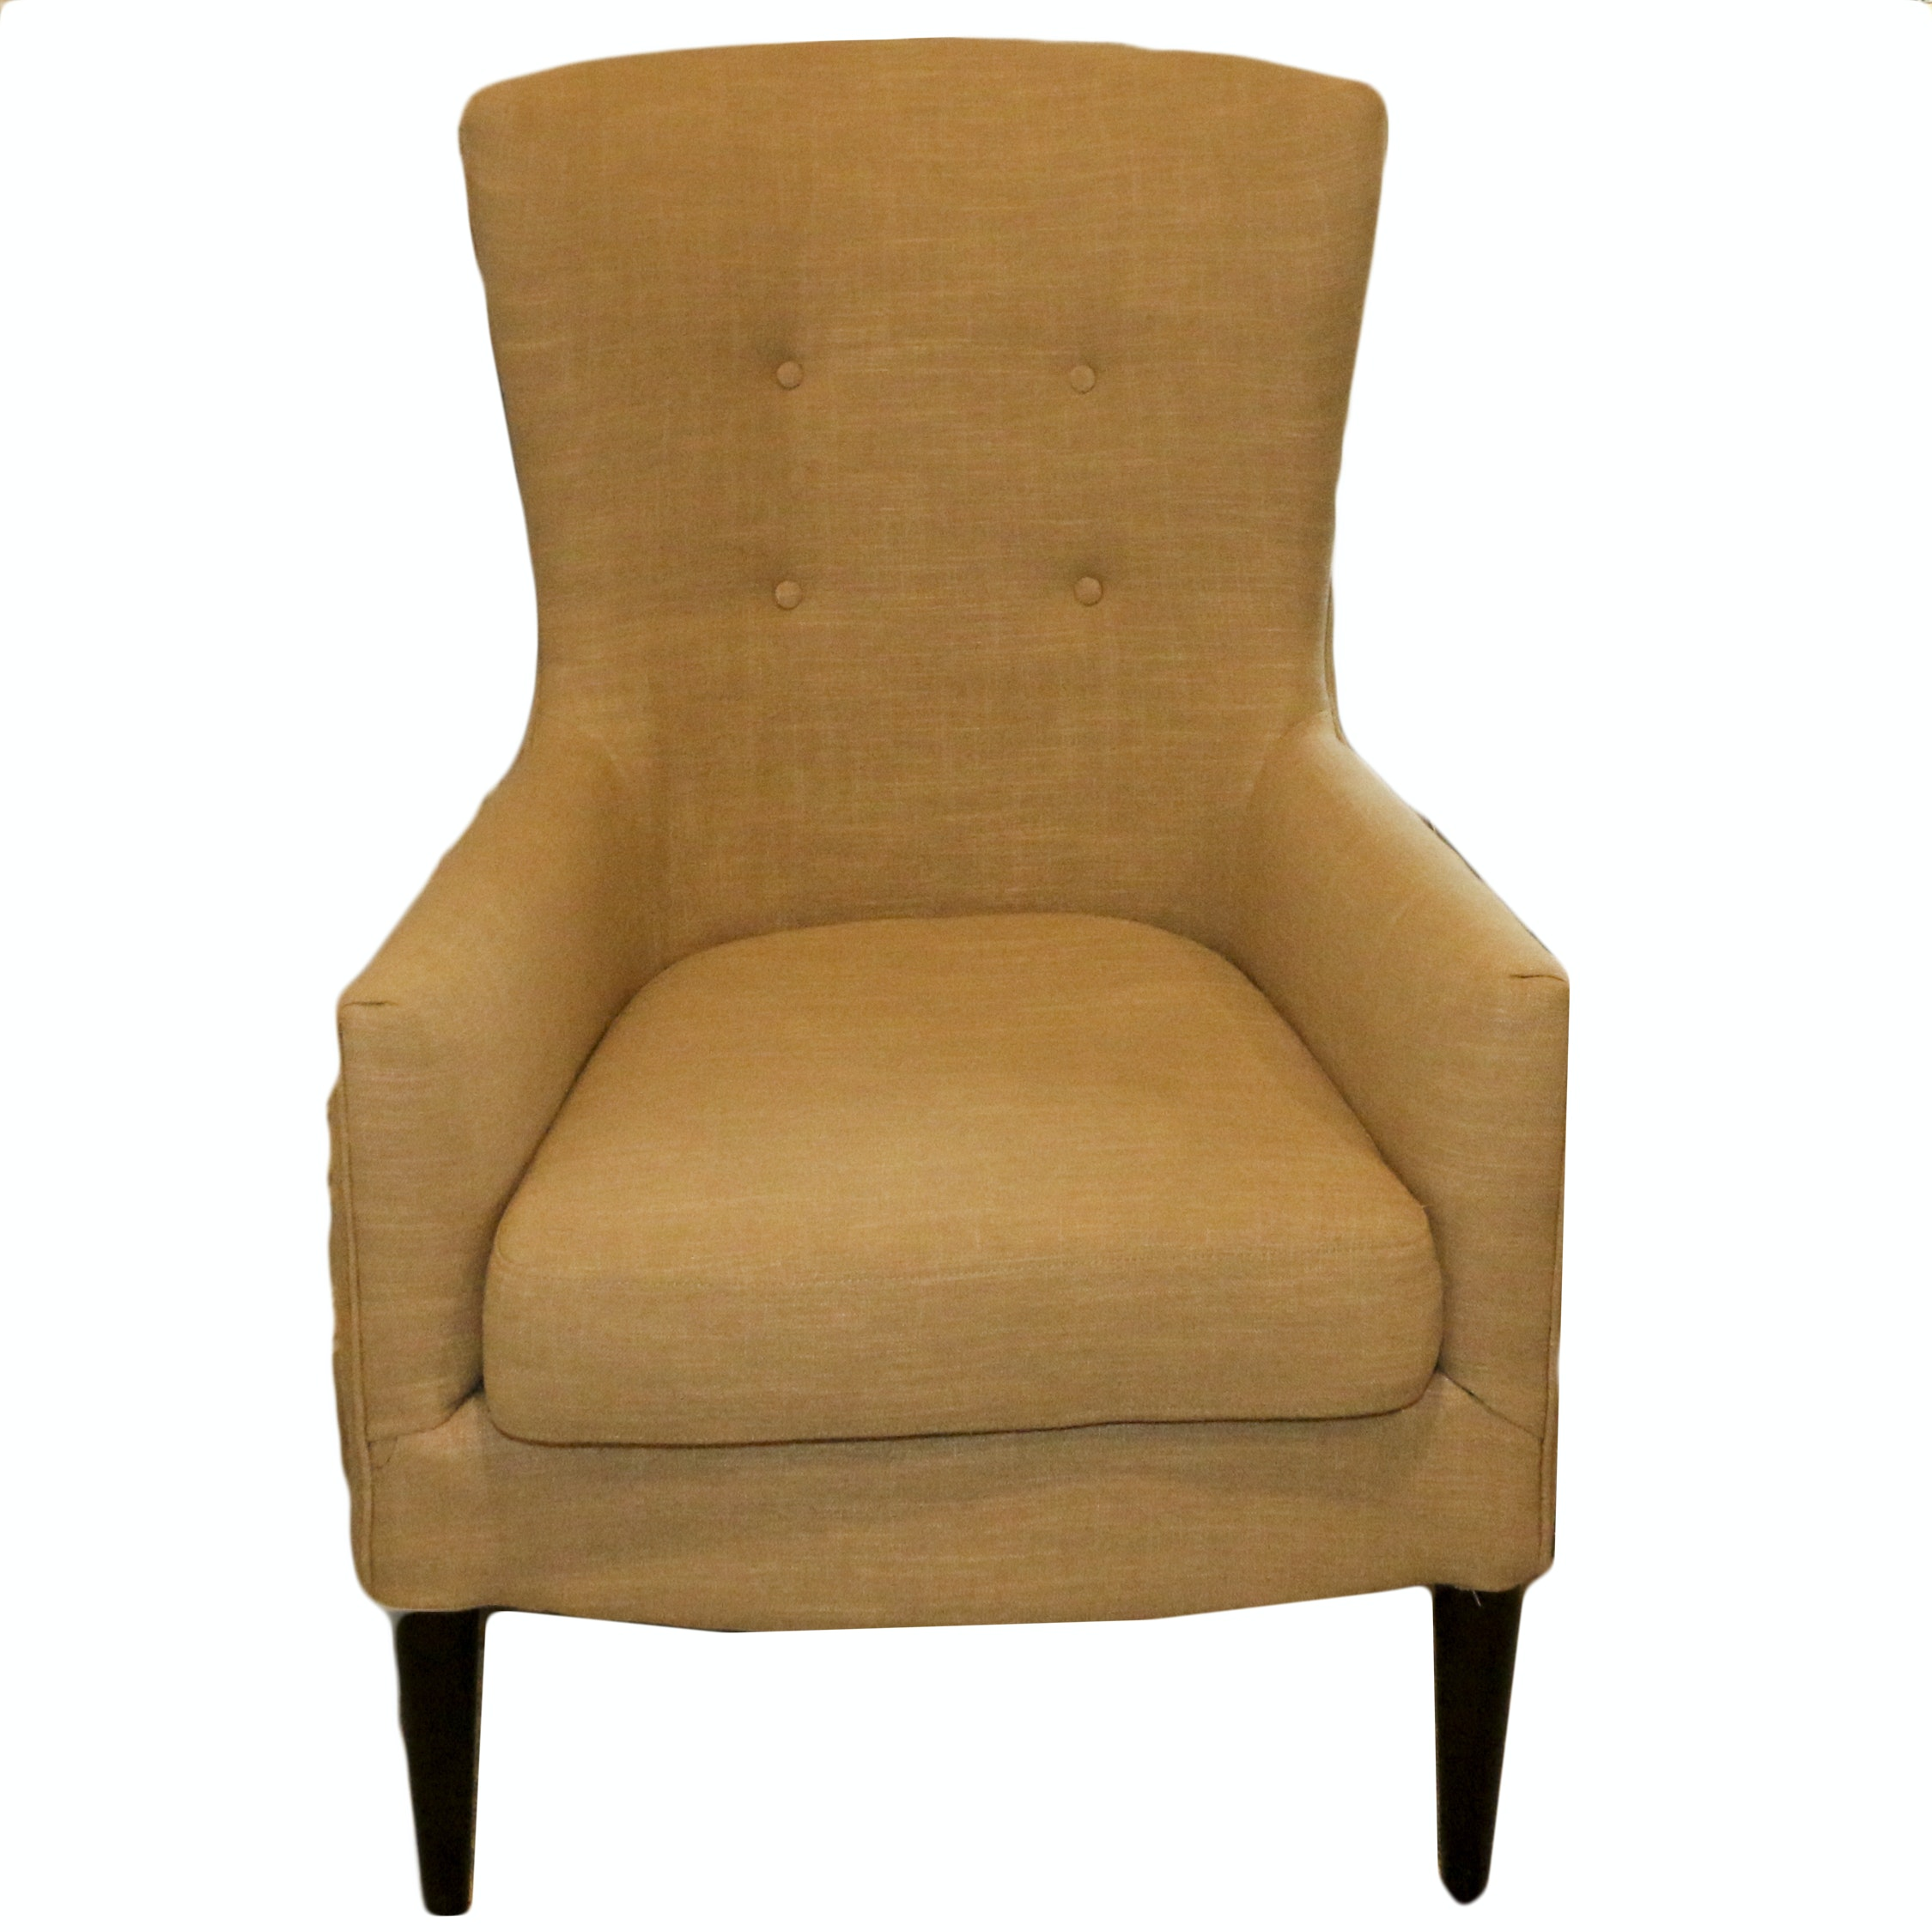 Button-Tufted Upholstered Armchair, 21st Century